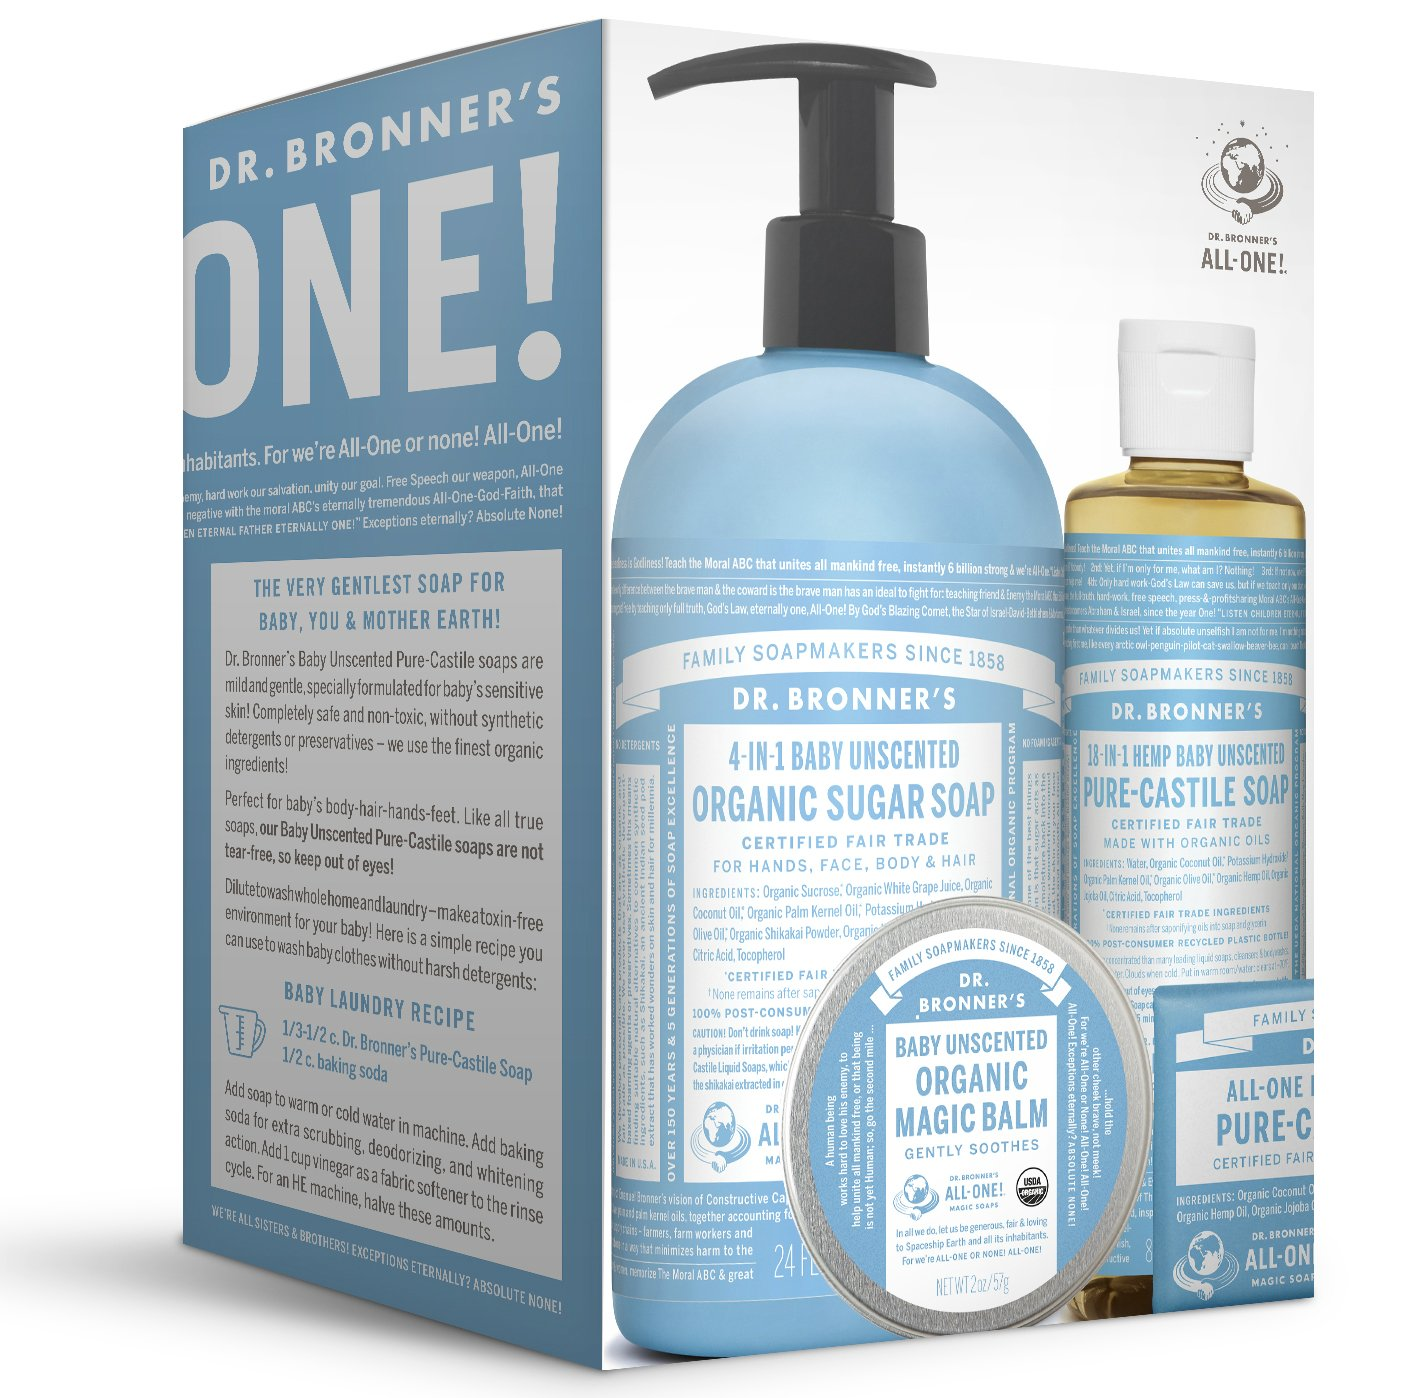 Dr. Bronner's Baby Unscented Gift Set - Pure-Castile Liquid and Bar Soaps, Organic Magic Balm, and 4-in-1 Organic Sugar Pump Soap